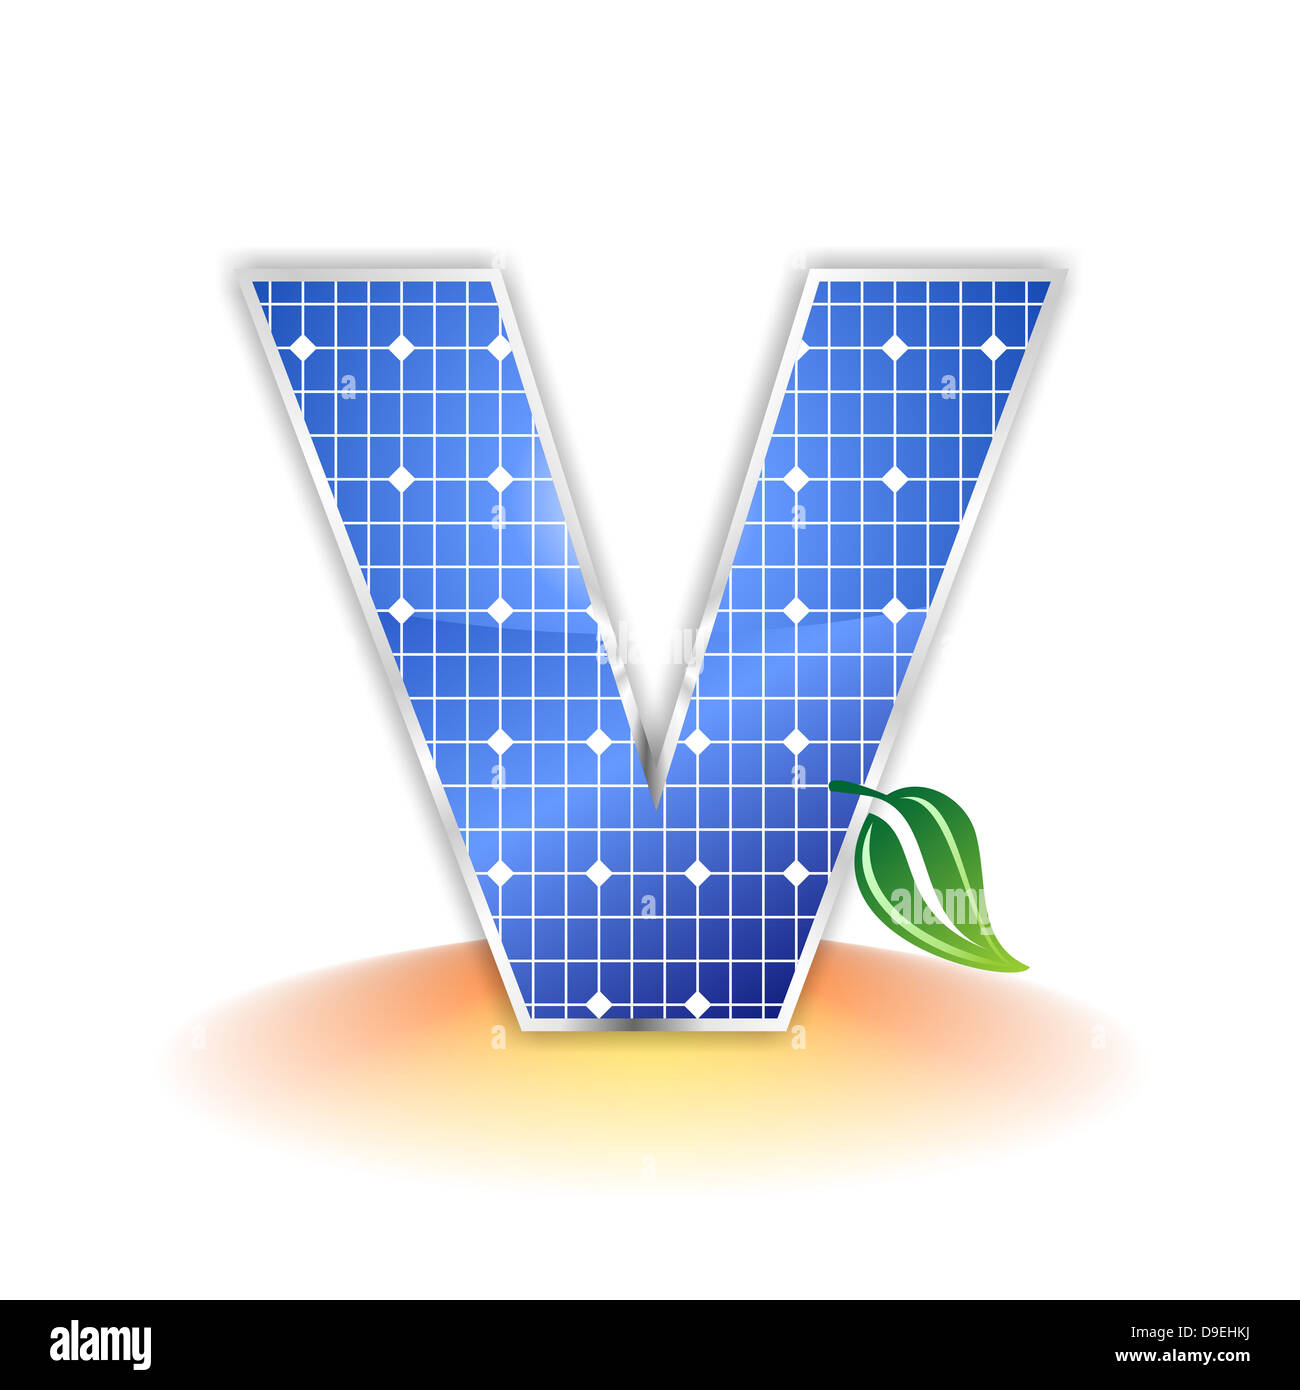 V, capital, letter V, solar panel, illustration, icon, texture - Stock Image